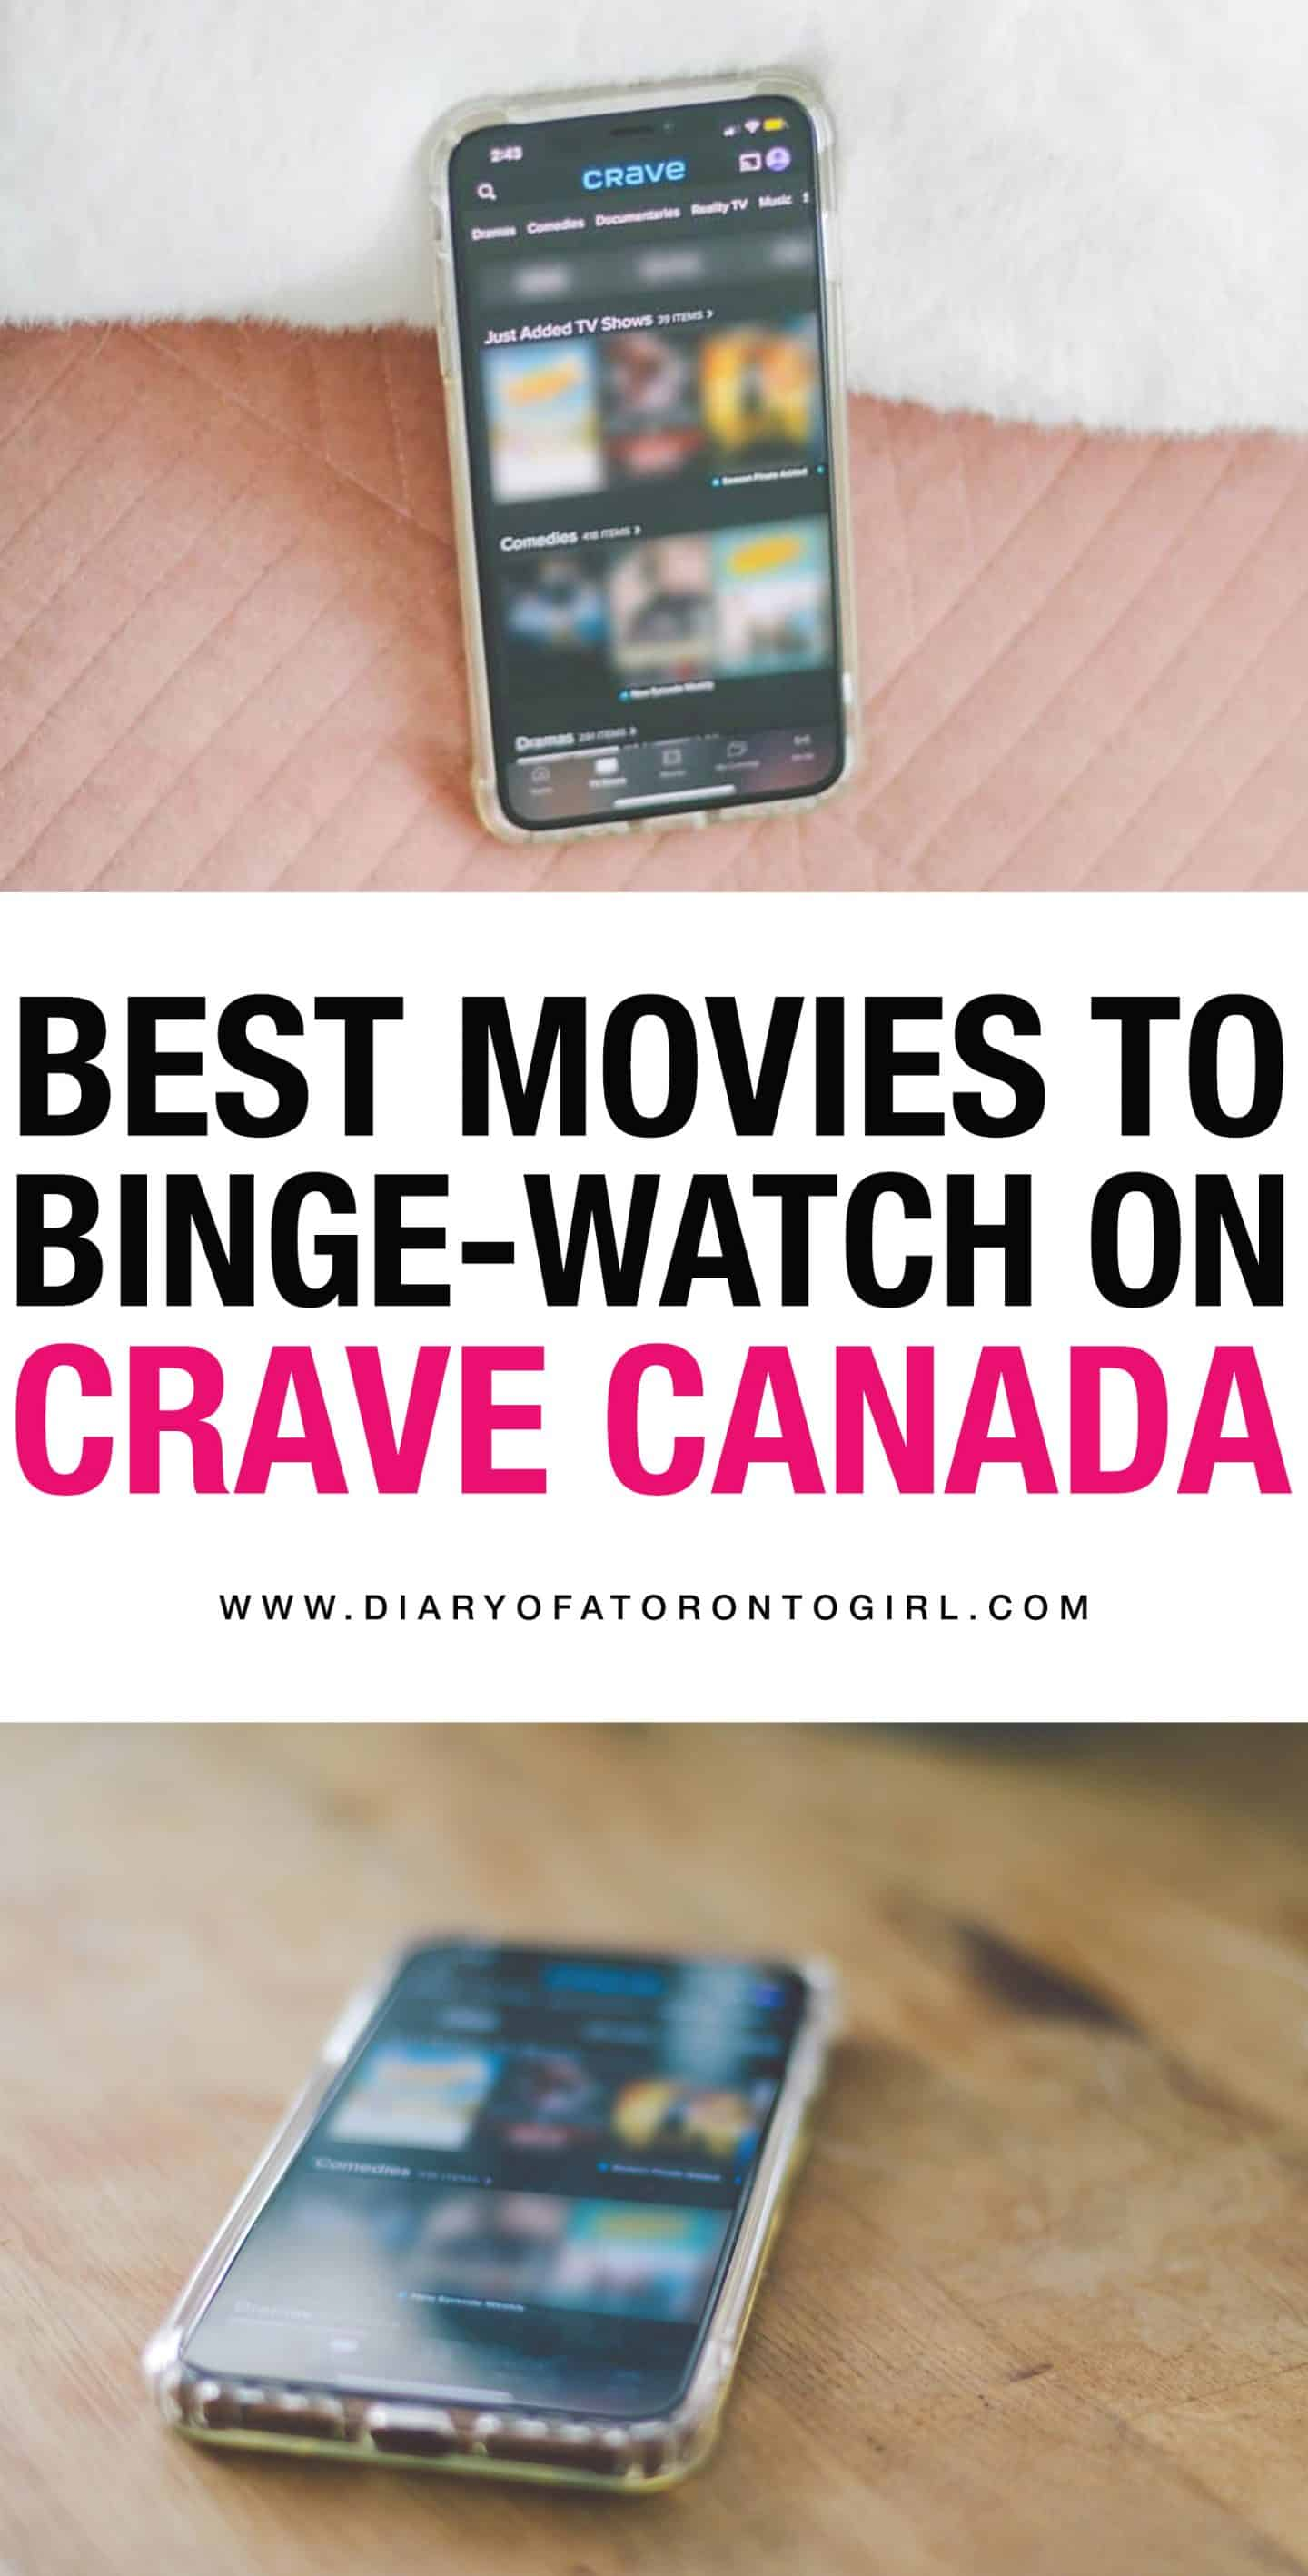 Looking for the best movies to watch on Crave? Here are some of the best films to binge-watch on Crave Canada for your movie marathon!